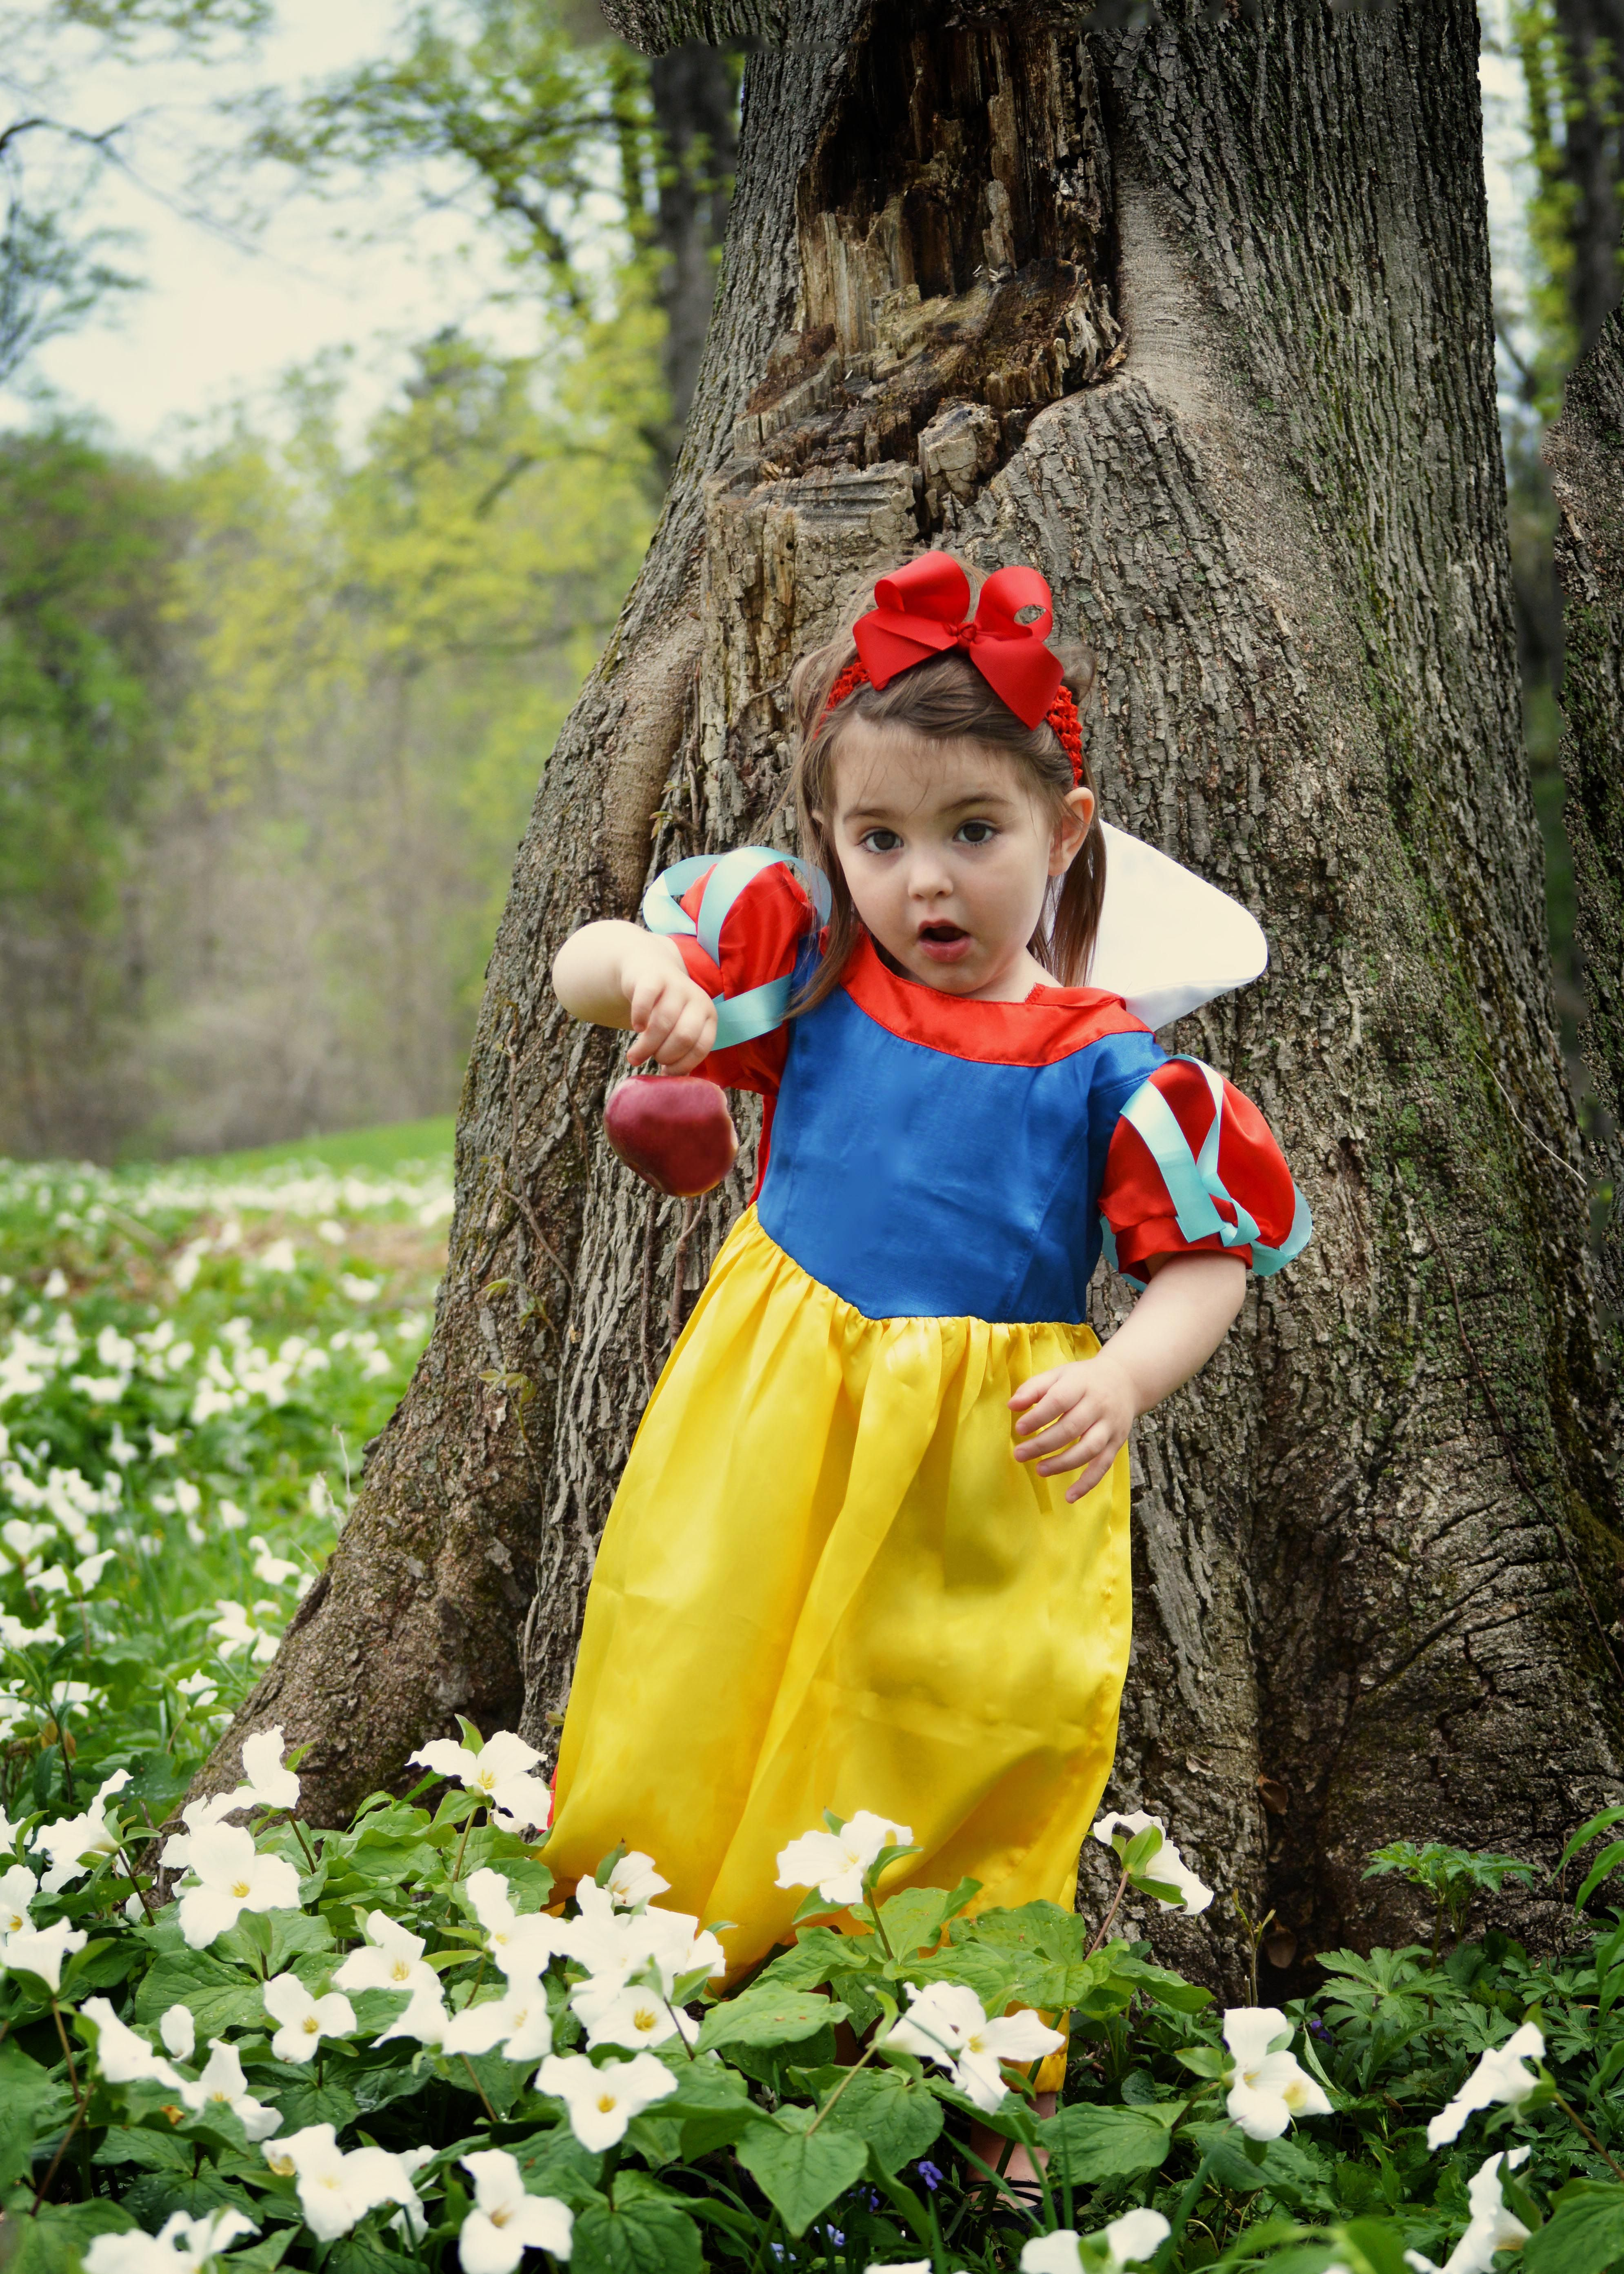 Snow White Fairy Tale Photo Shoot. 2 Year Old Girl As Snow